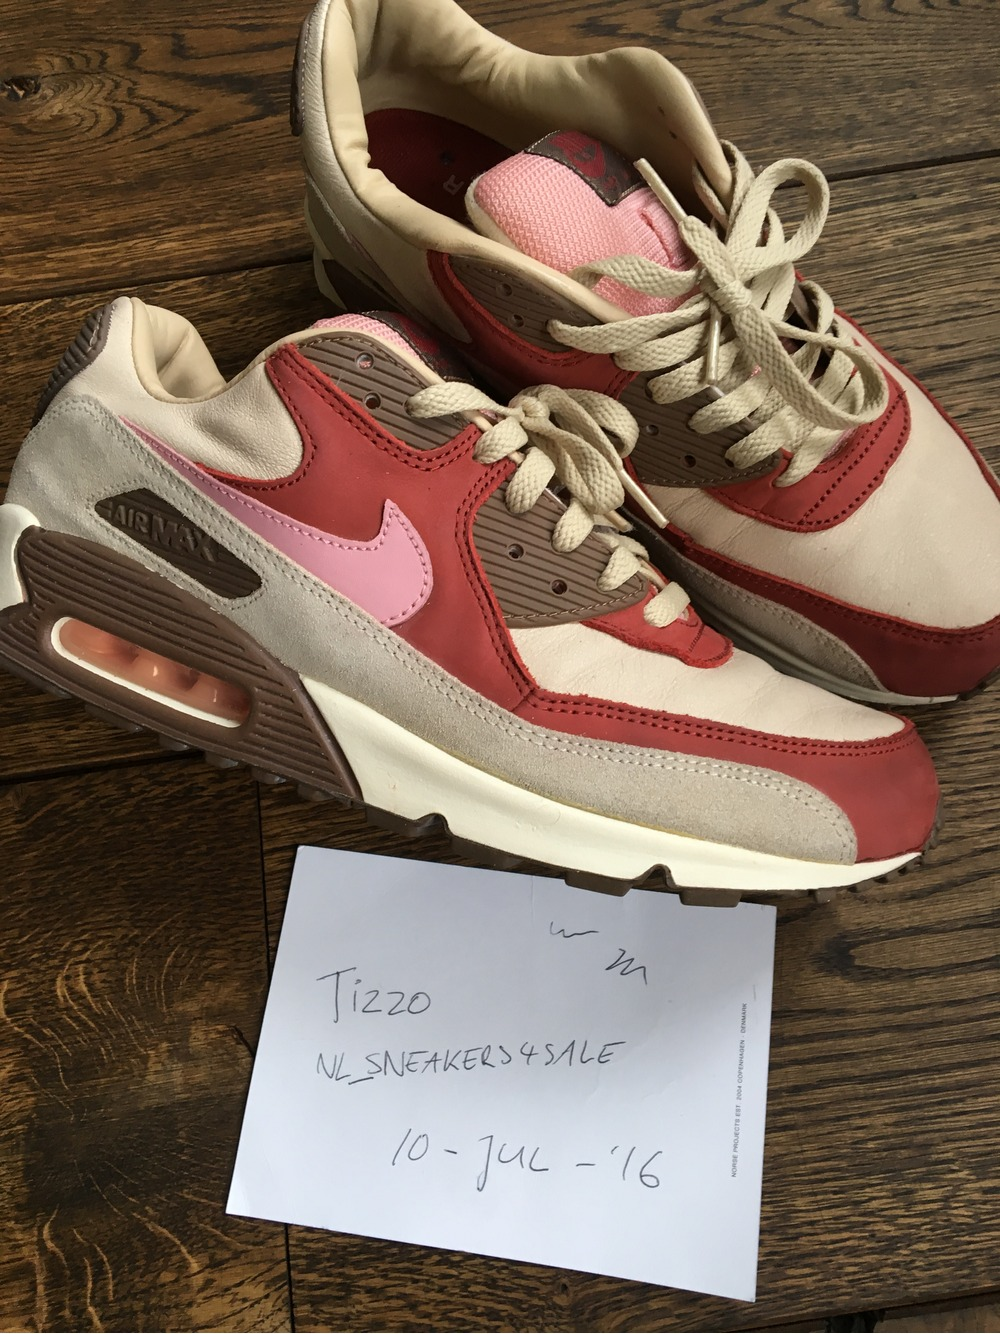 check out 8af9f 27182 ... Nike Air Max 90 DQM Bacon (517728) from tizzo at KLEKT ...